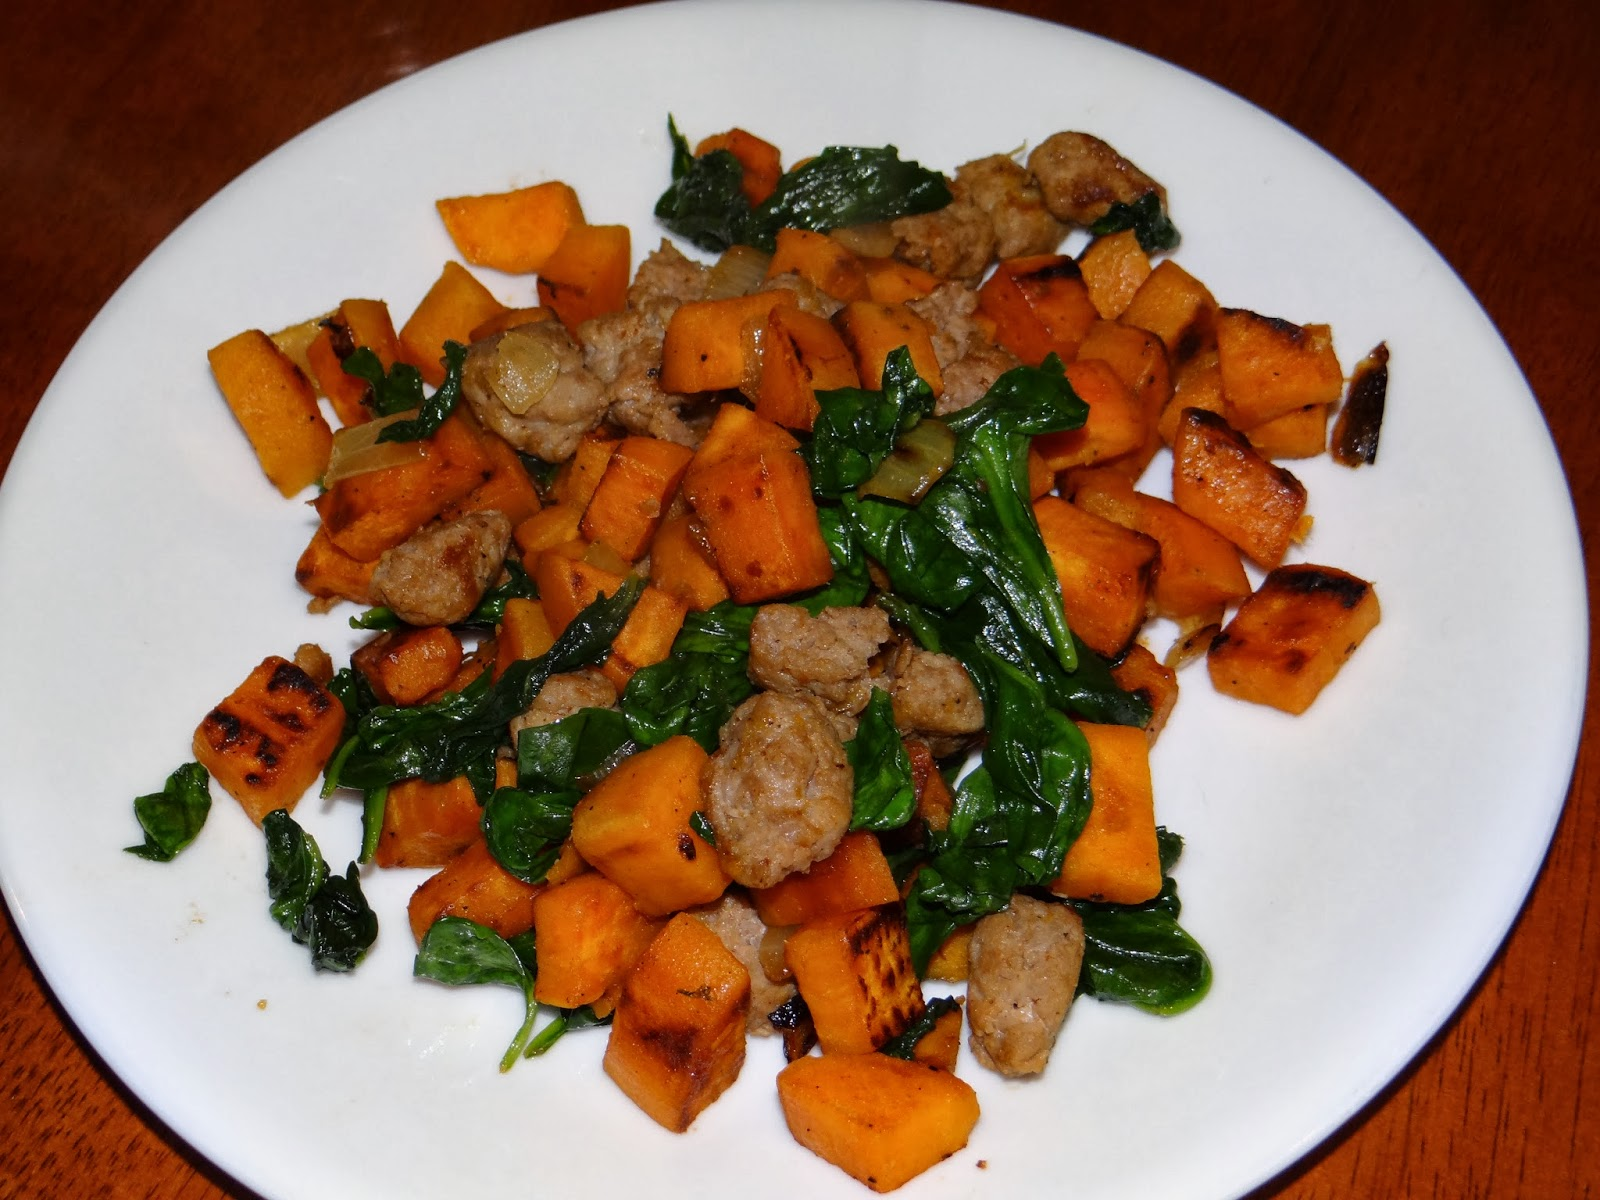 emjay's course: Sweet Potato, Spinach, and Turkey Sausage Hash